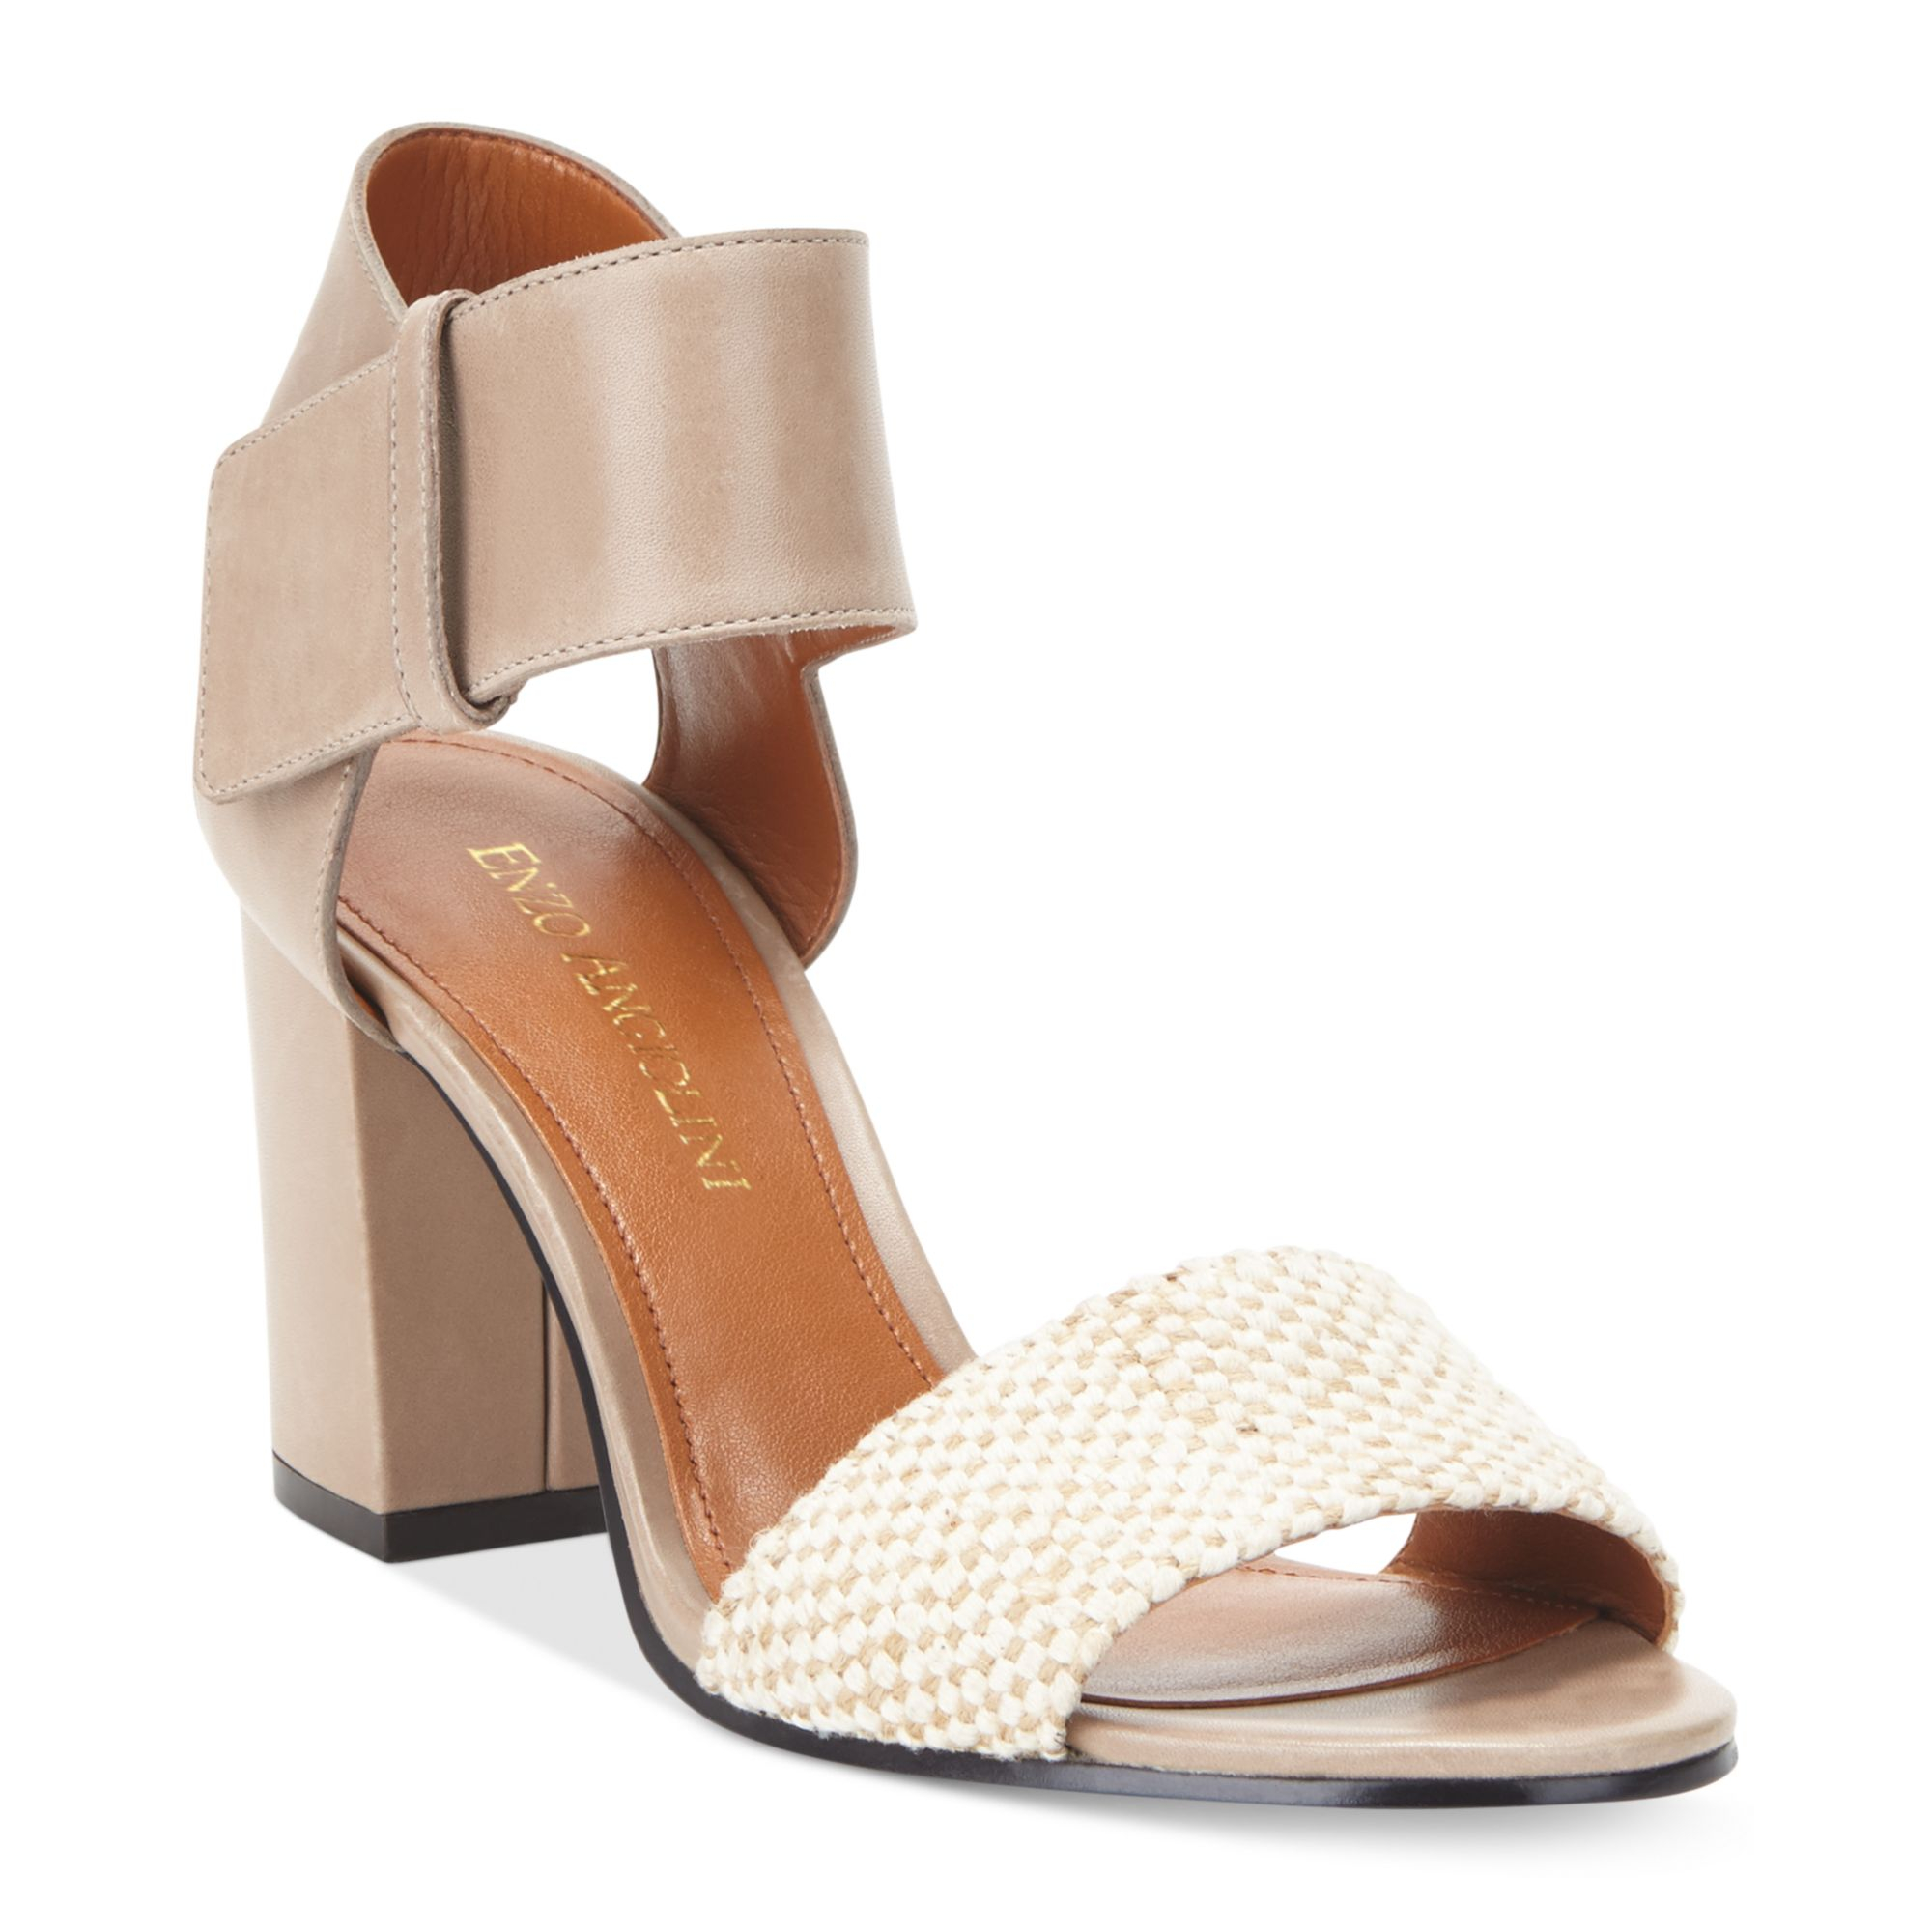 Lyst - Enzo Angiolini Gwindell Sandals in Natural dca28208b